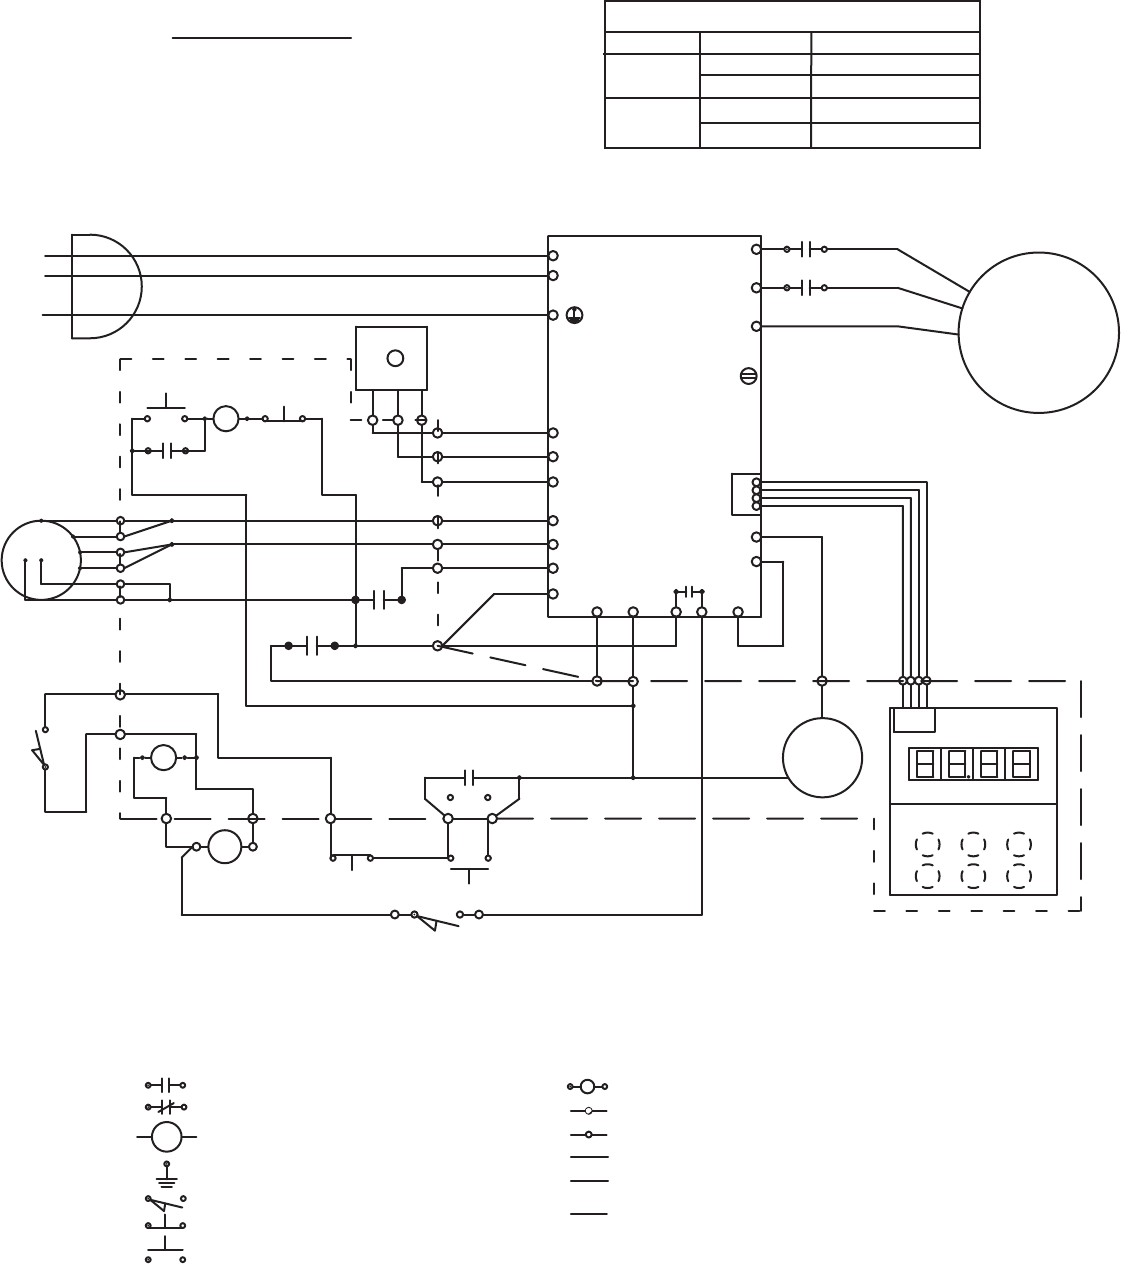 hight resolution of hobart 200 switch diagram wiring diagram fascinating